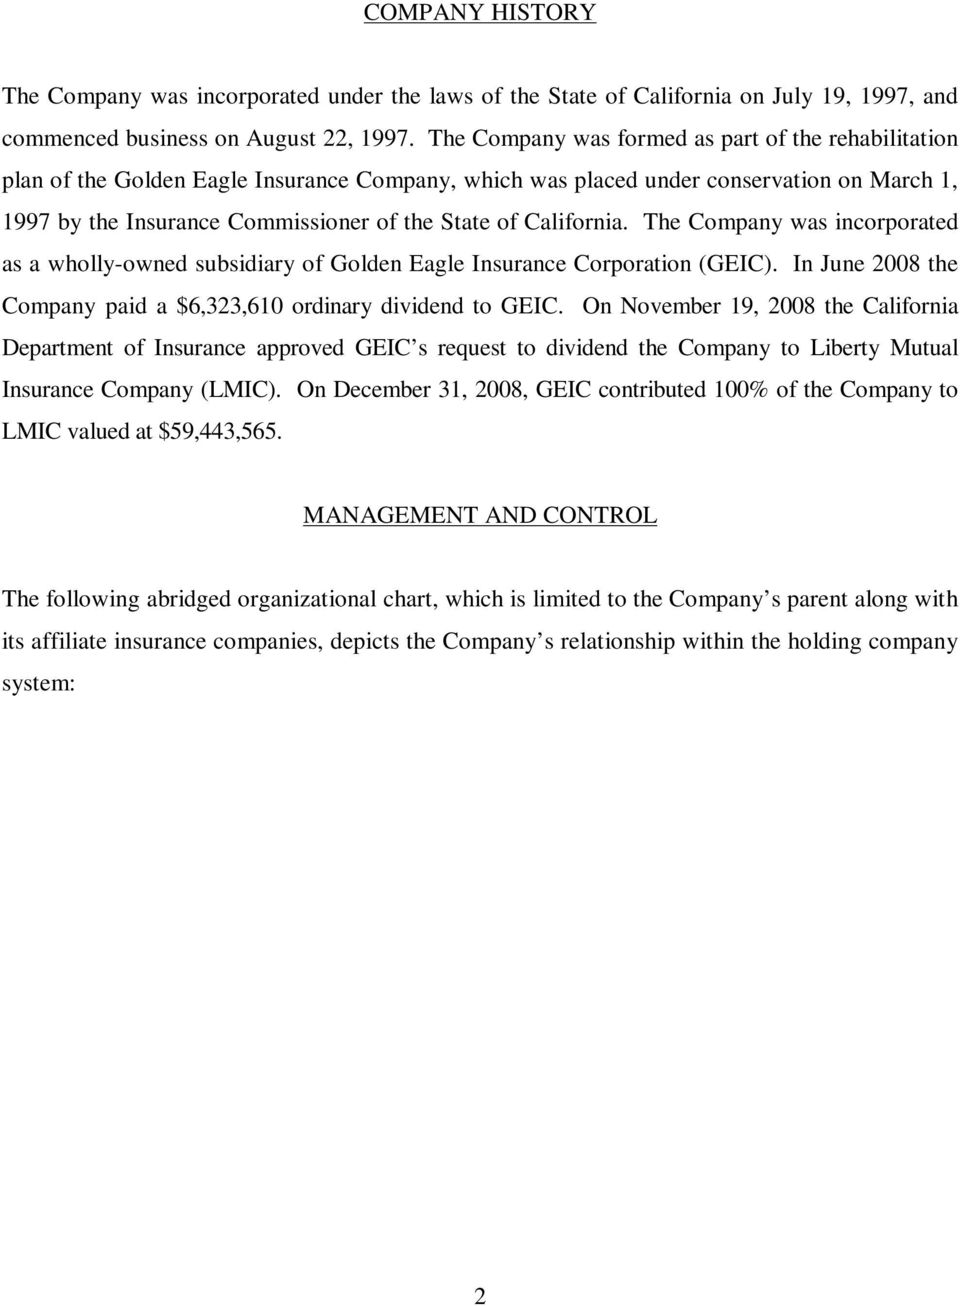 California. The Company was incorporated as a wholly-owned subsidiary of Golden Eagle Insurance Corporation (GEIC). In June 2008 the Company paid a $6,323,610 ordinary dividend to GEIC.